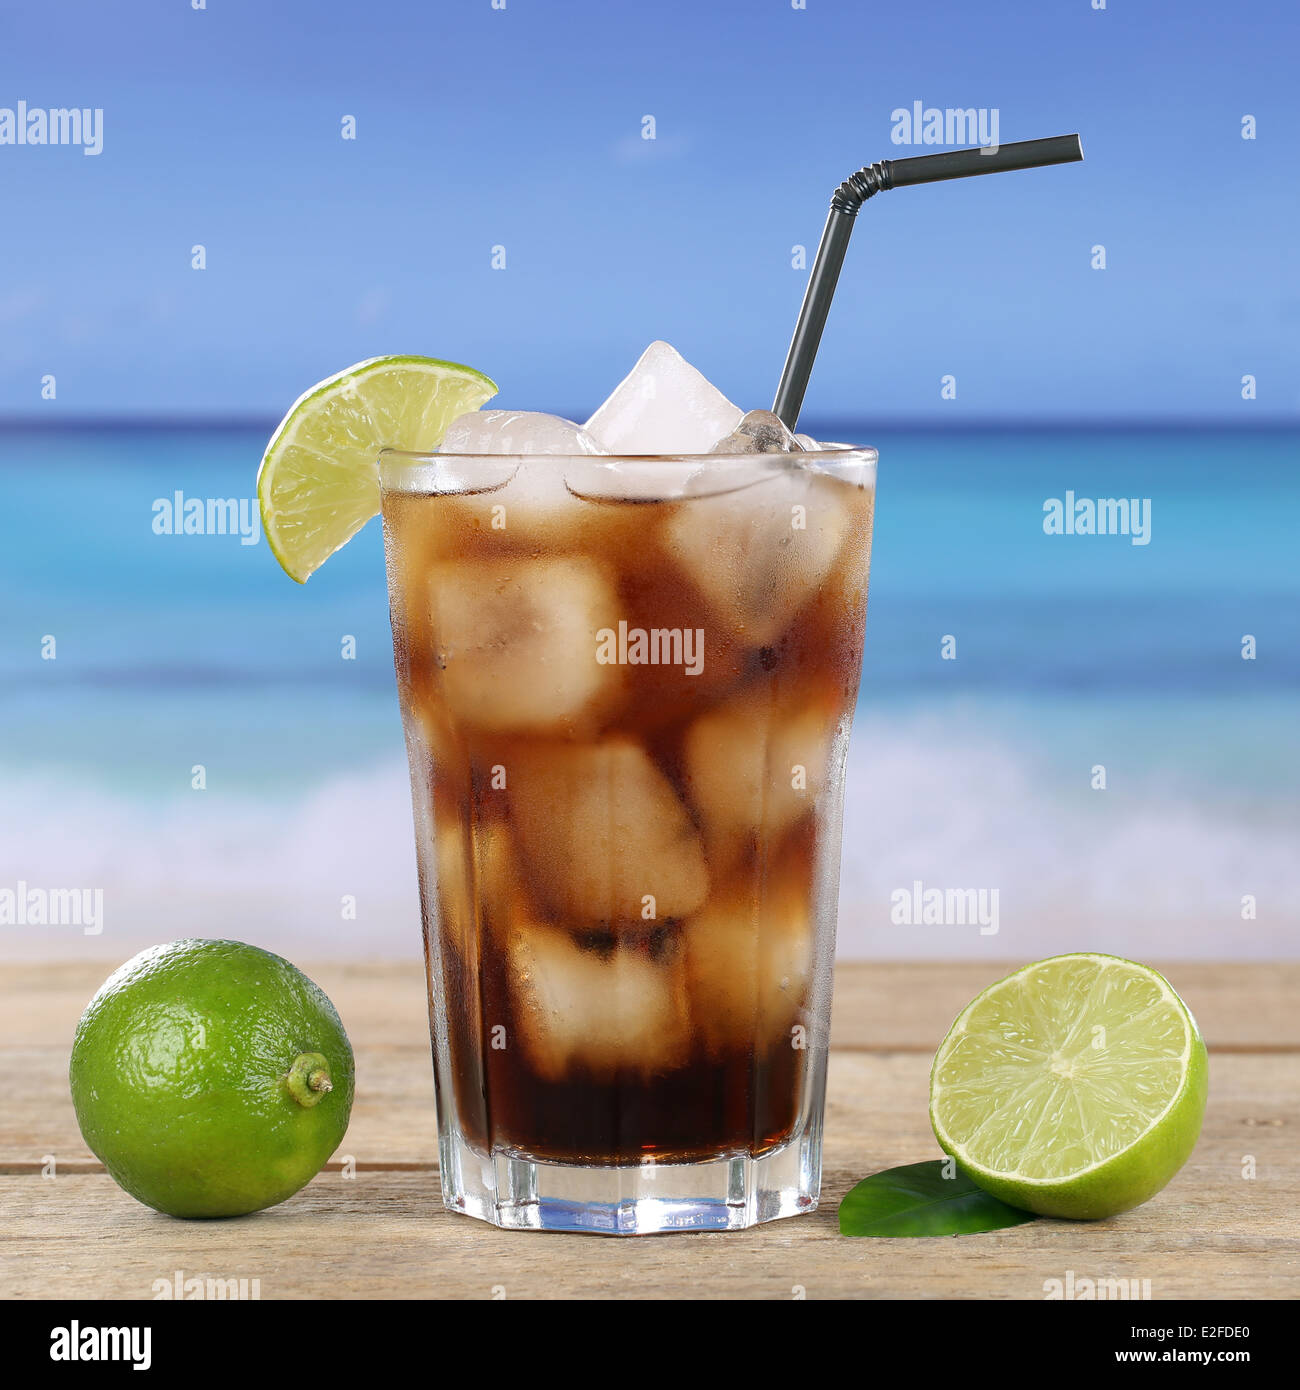 Cuba Libre Drink Cola Cocktail Stock Photos And Cola Cocktail Stock Images